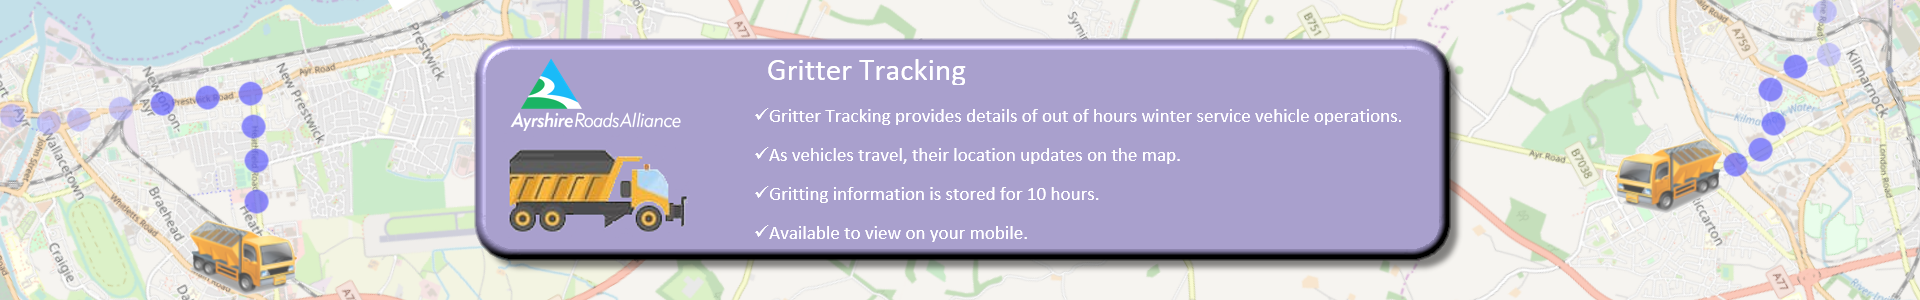 Gritter tracking